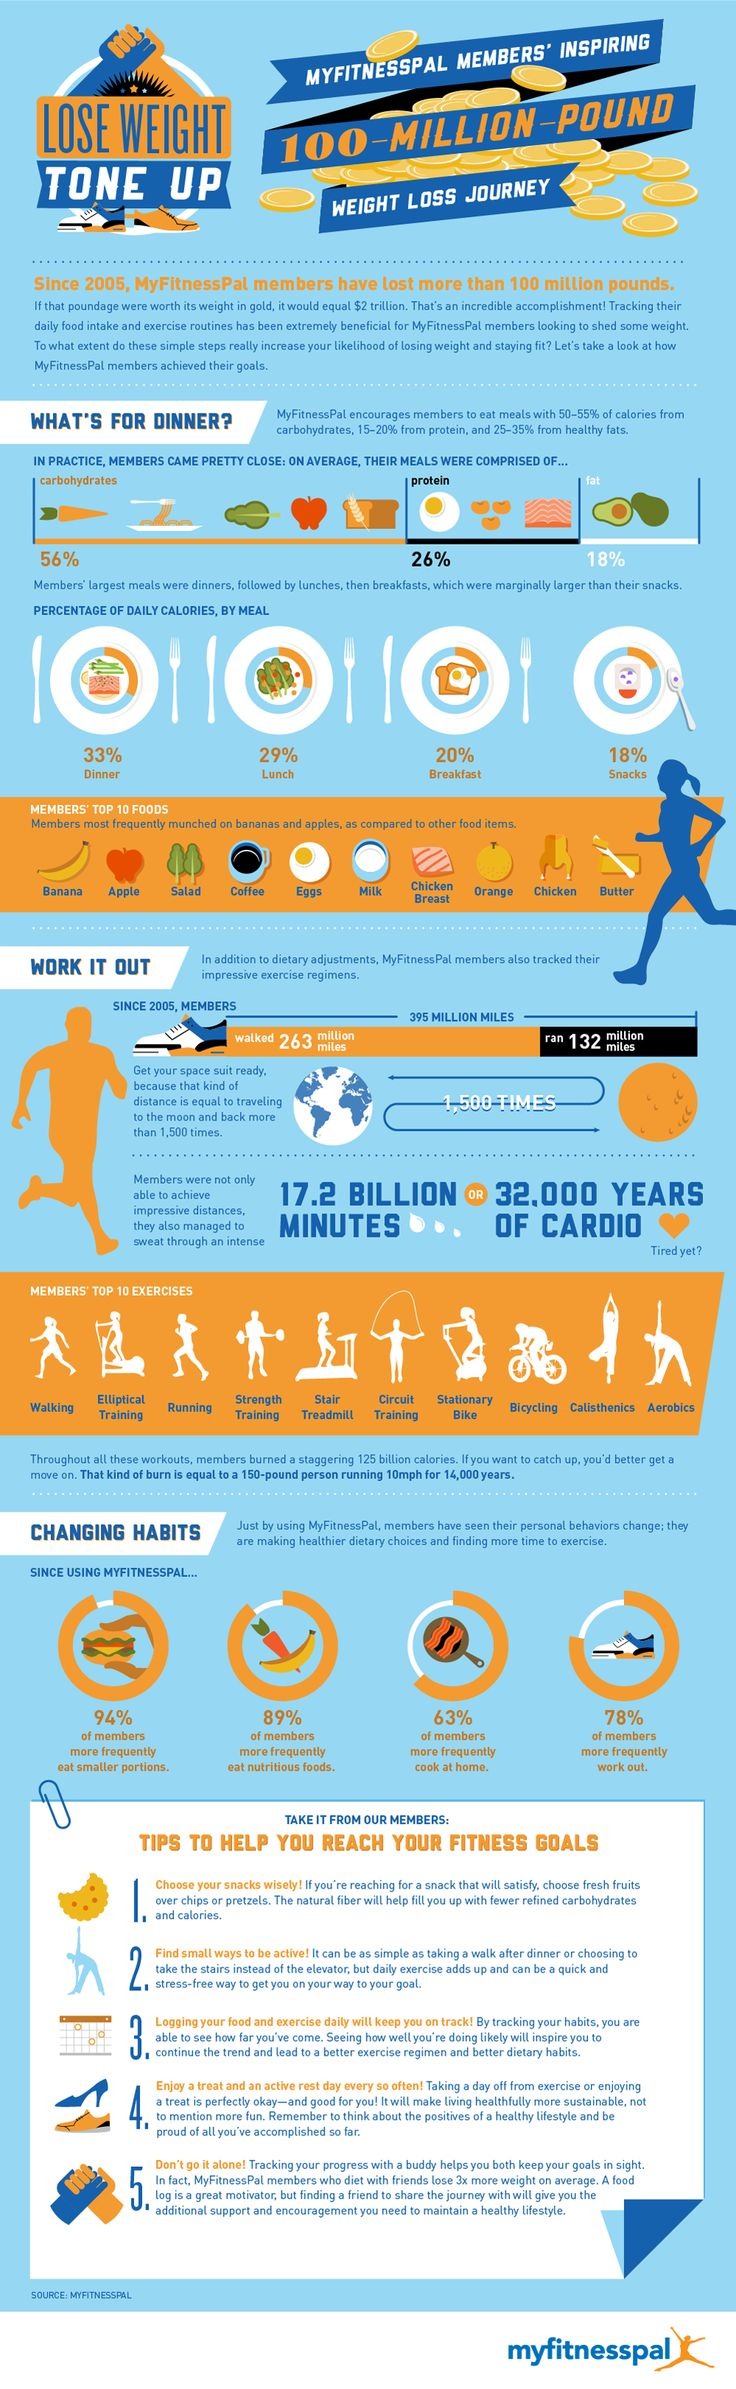 Interesting MyFitnessPal infographic about how members